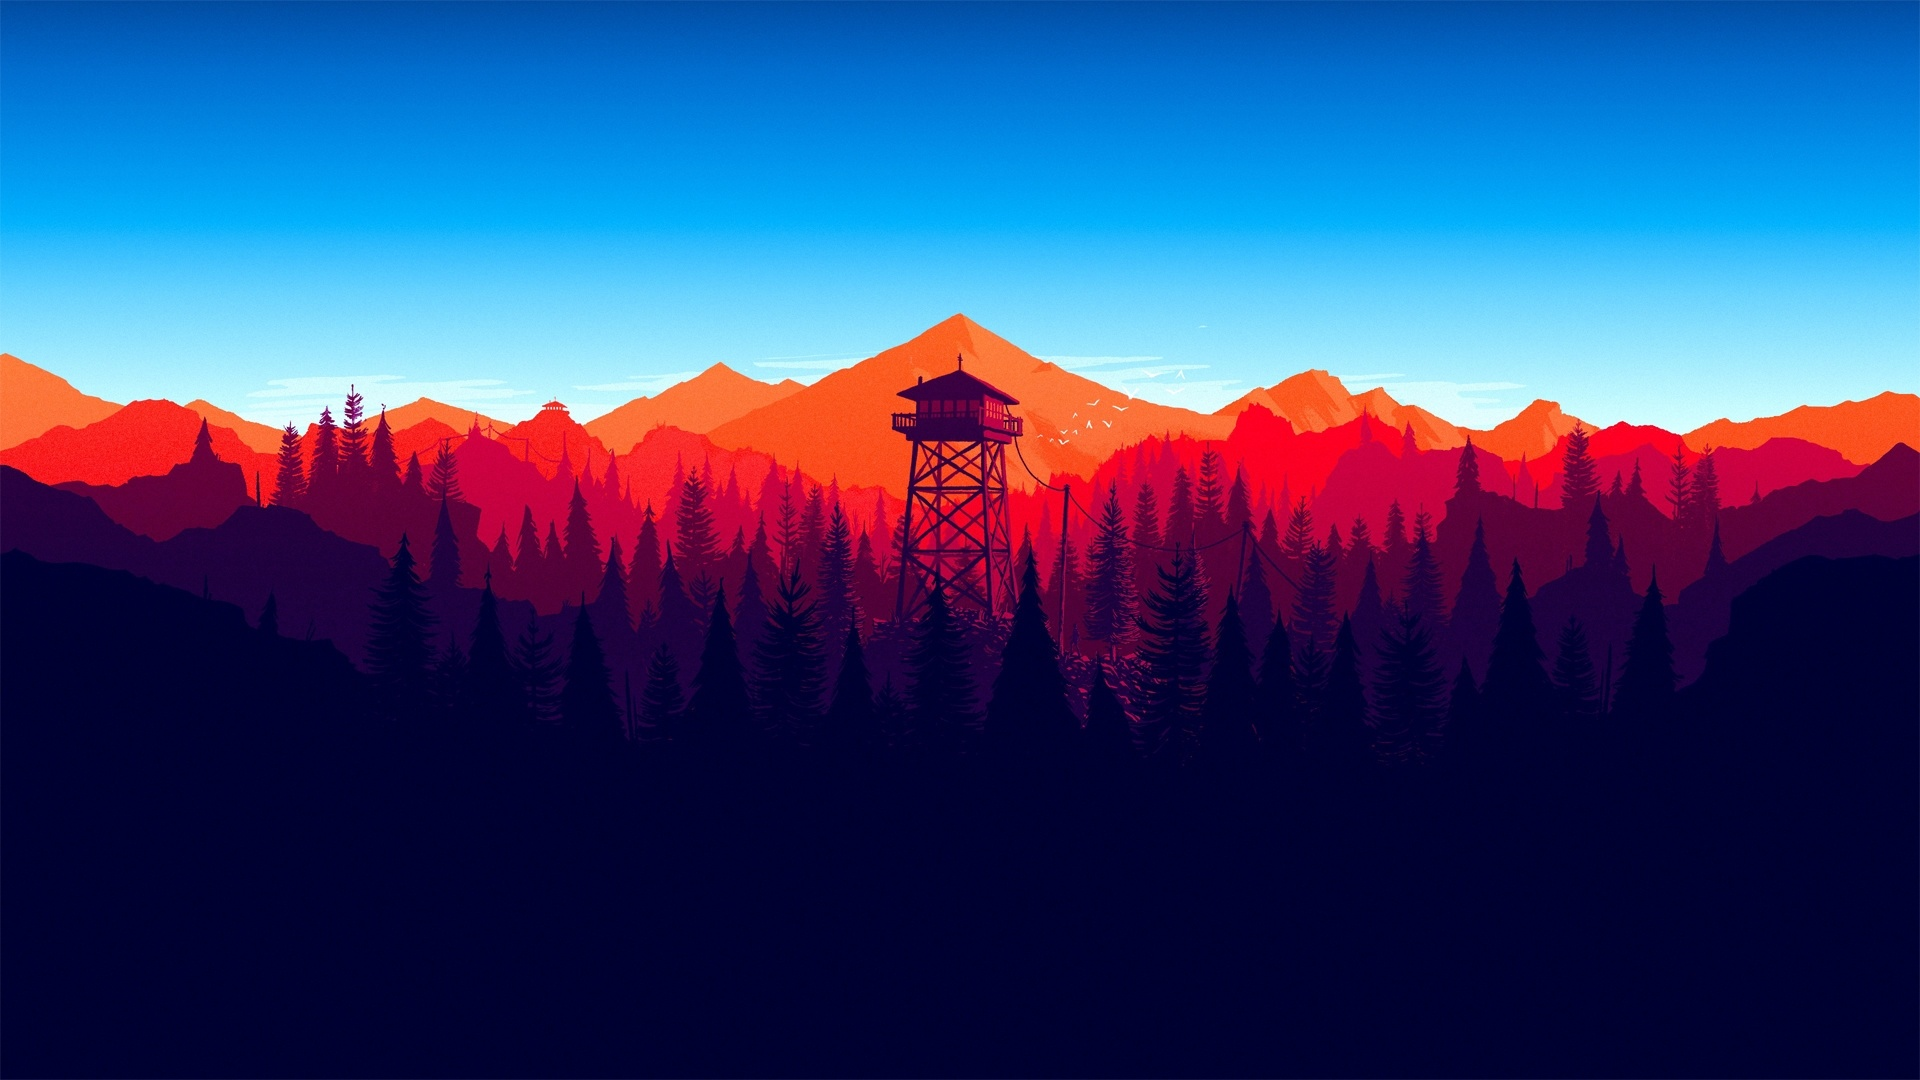 Firewatch background picture